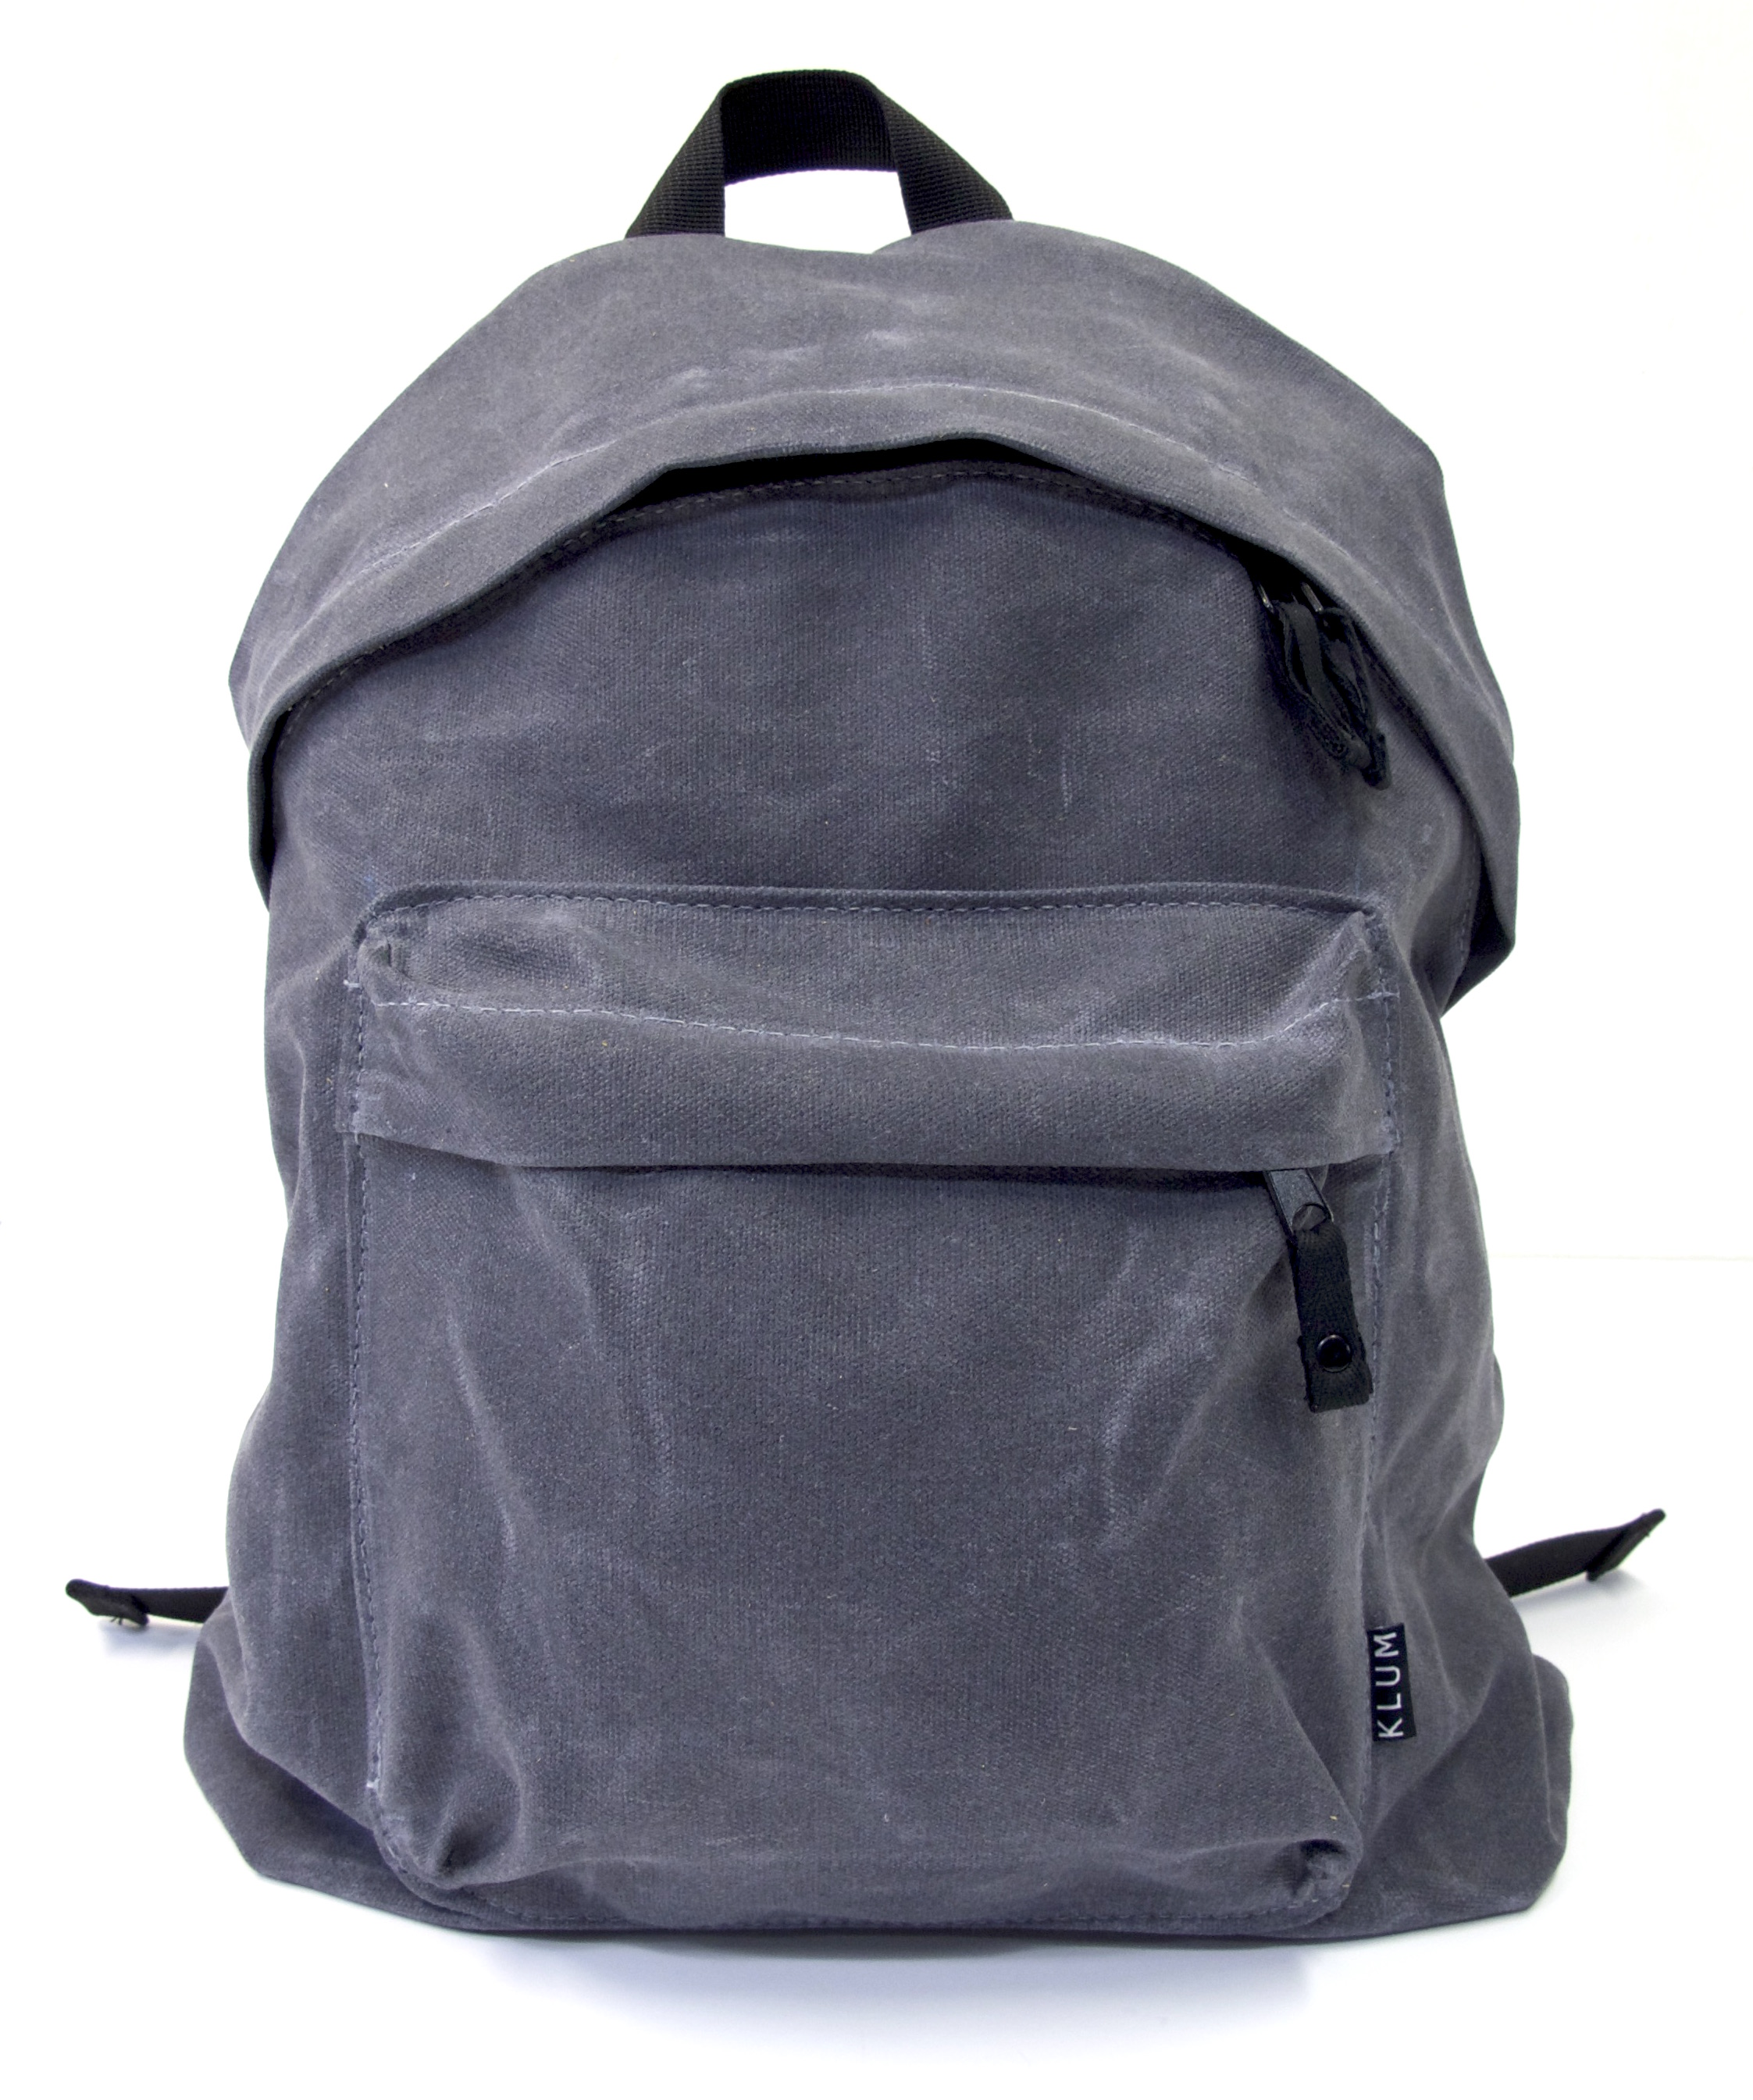 Gray-waxed-canvas-knapsack-learn-to-sew-bags